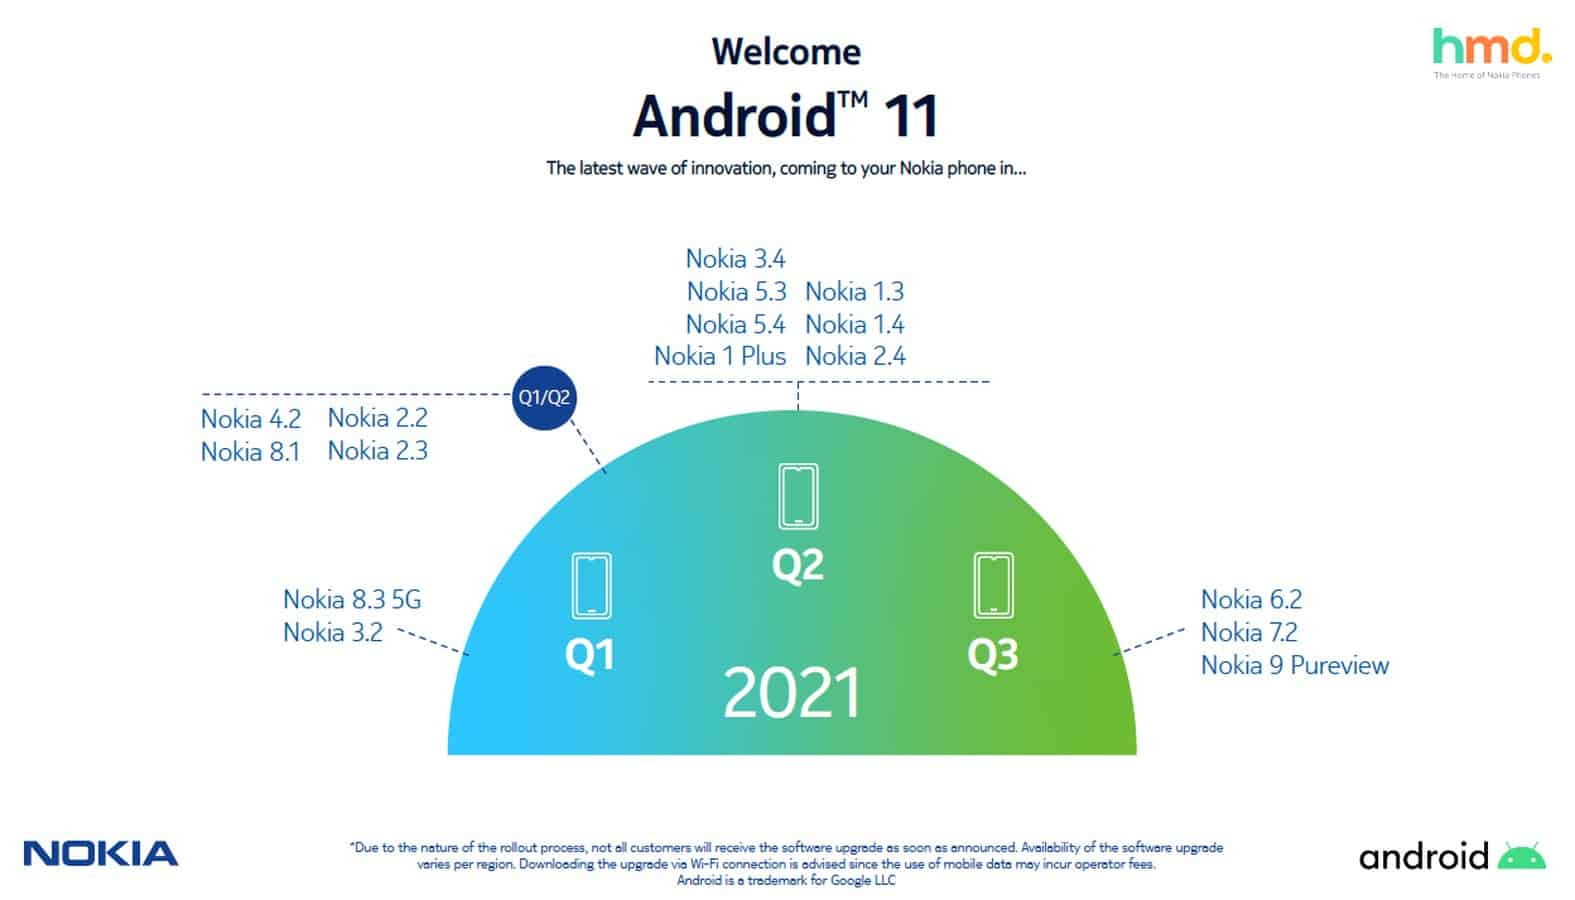 Nokia Android 11 revised roadmap May 2021